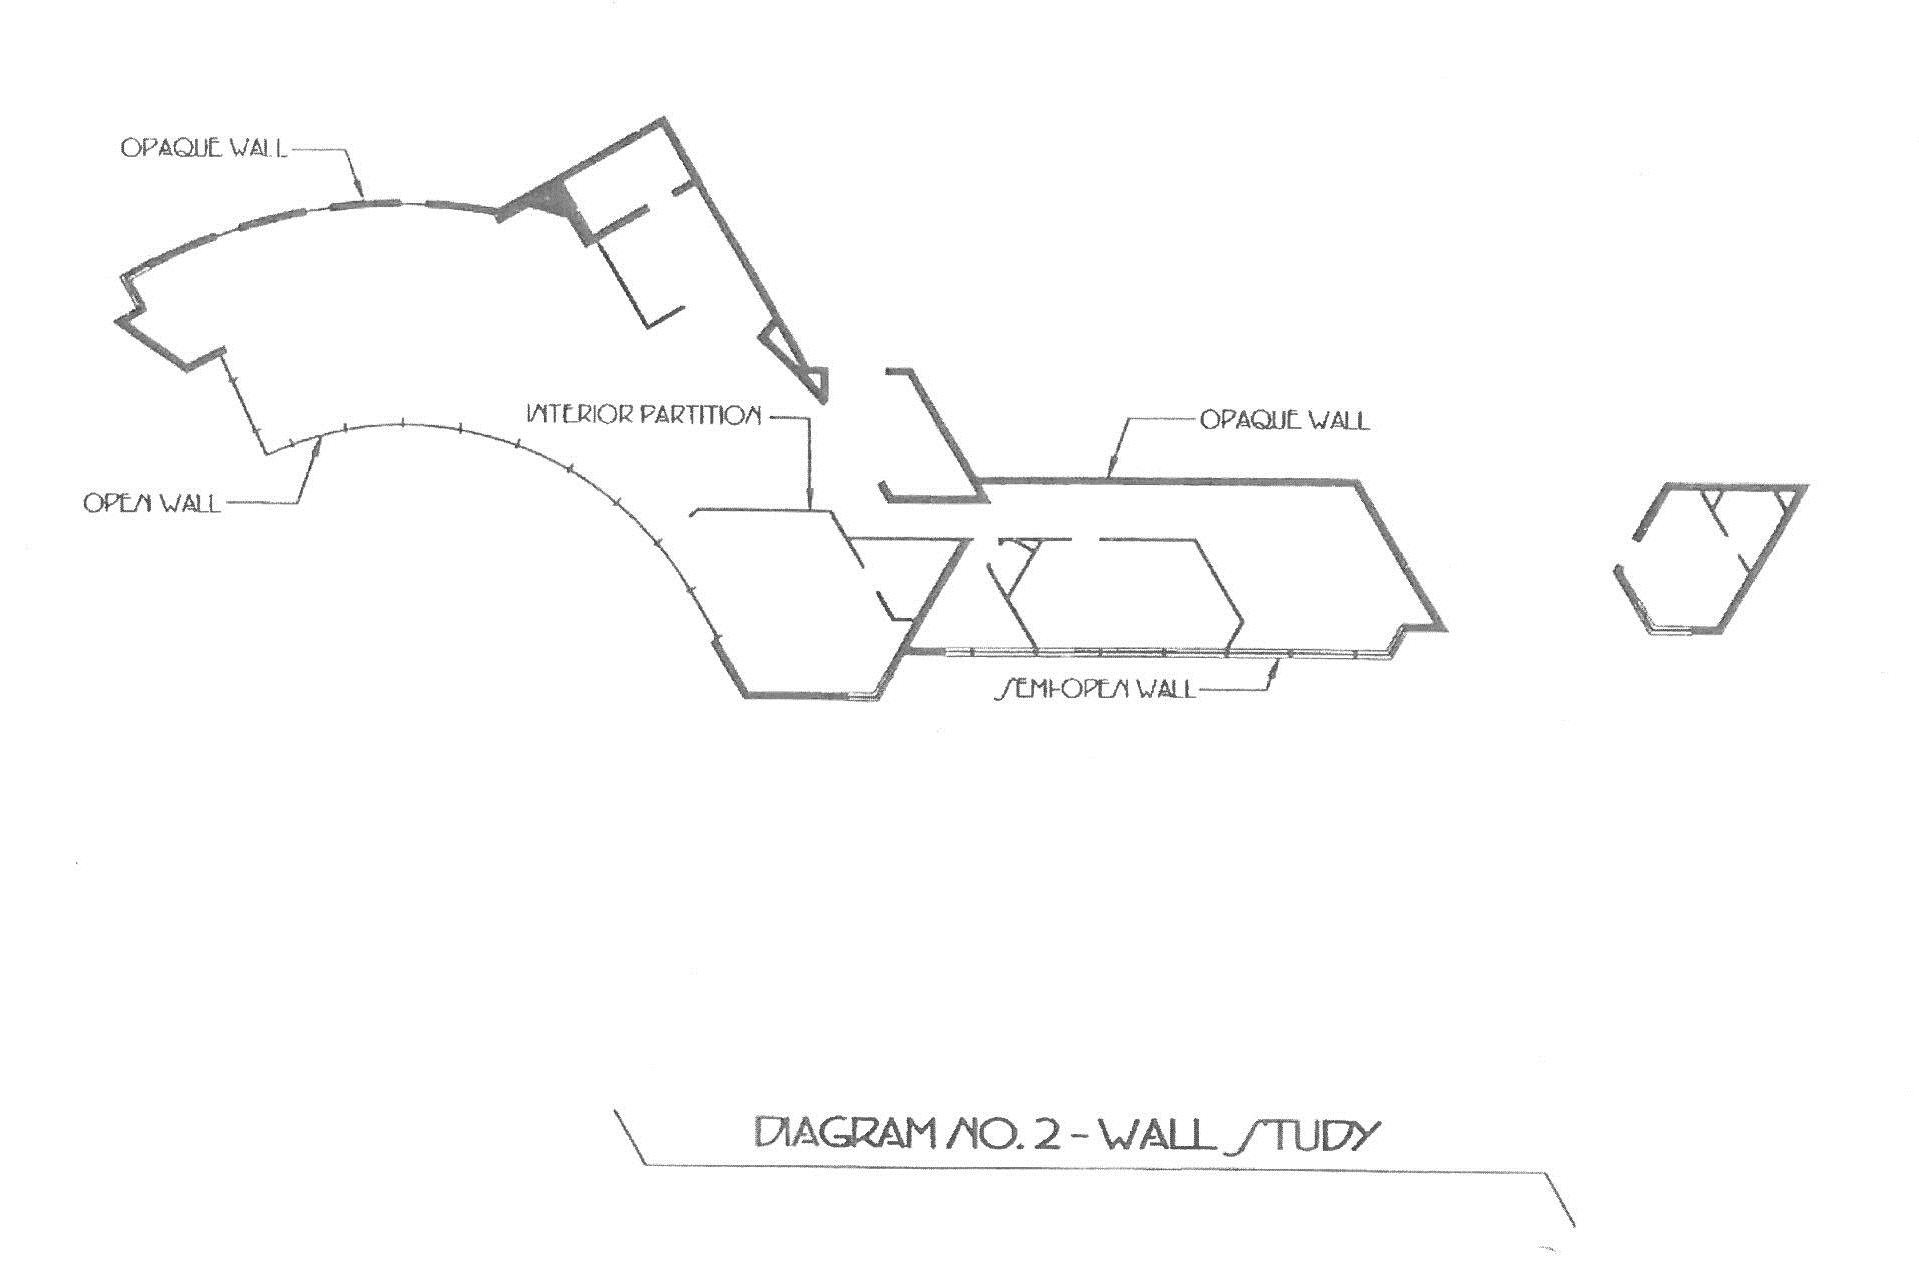 Cooke House Diagram 2 Wall Study from 1999 booklet